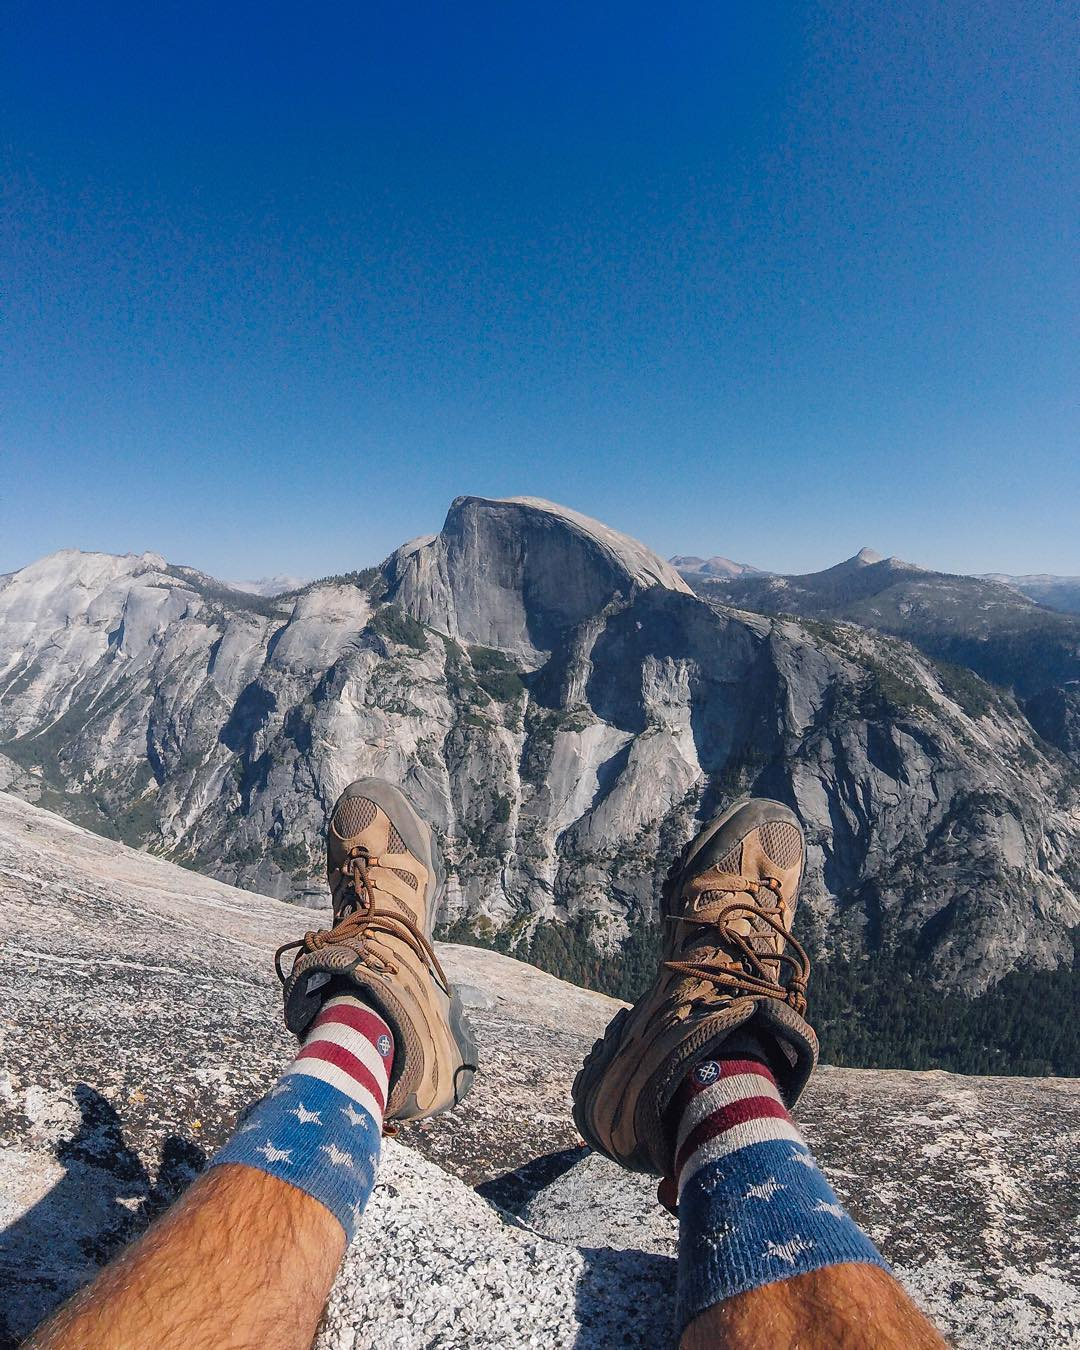 #TBT to a hot summer day hike at one of America's iconic parks, @yosemitenps. (Thanks for the photo + we love the socks @mikemaholias!) Share your best throwbacks with us via #GoProAwards link in our bio. #GoPro #Merica #